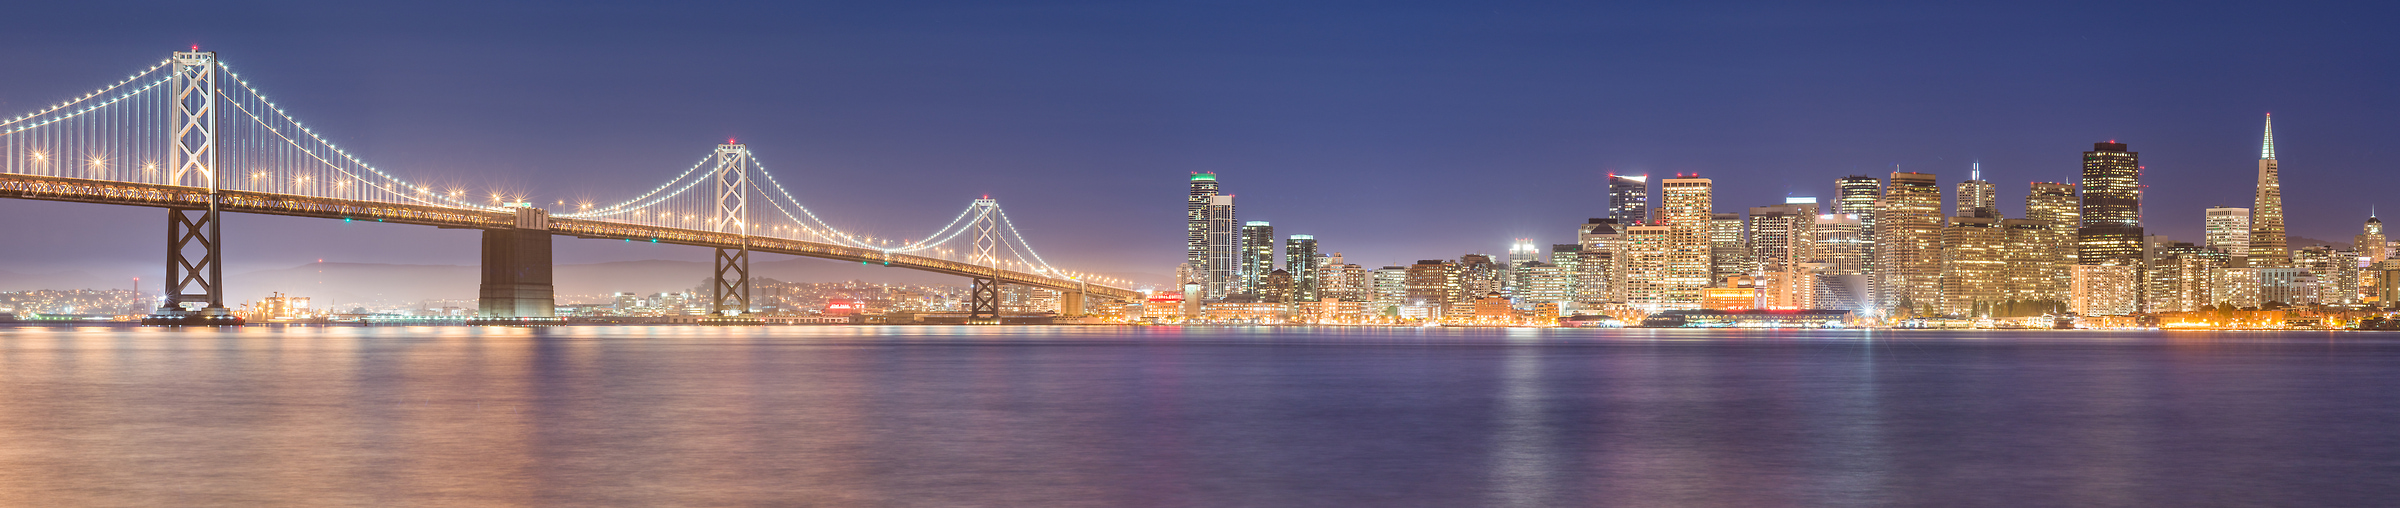 112 megapixels! A very high resolution, large-format VAST photo print of the San Francisco skyline in California at at night; cityscape photo created by Justin Katz